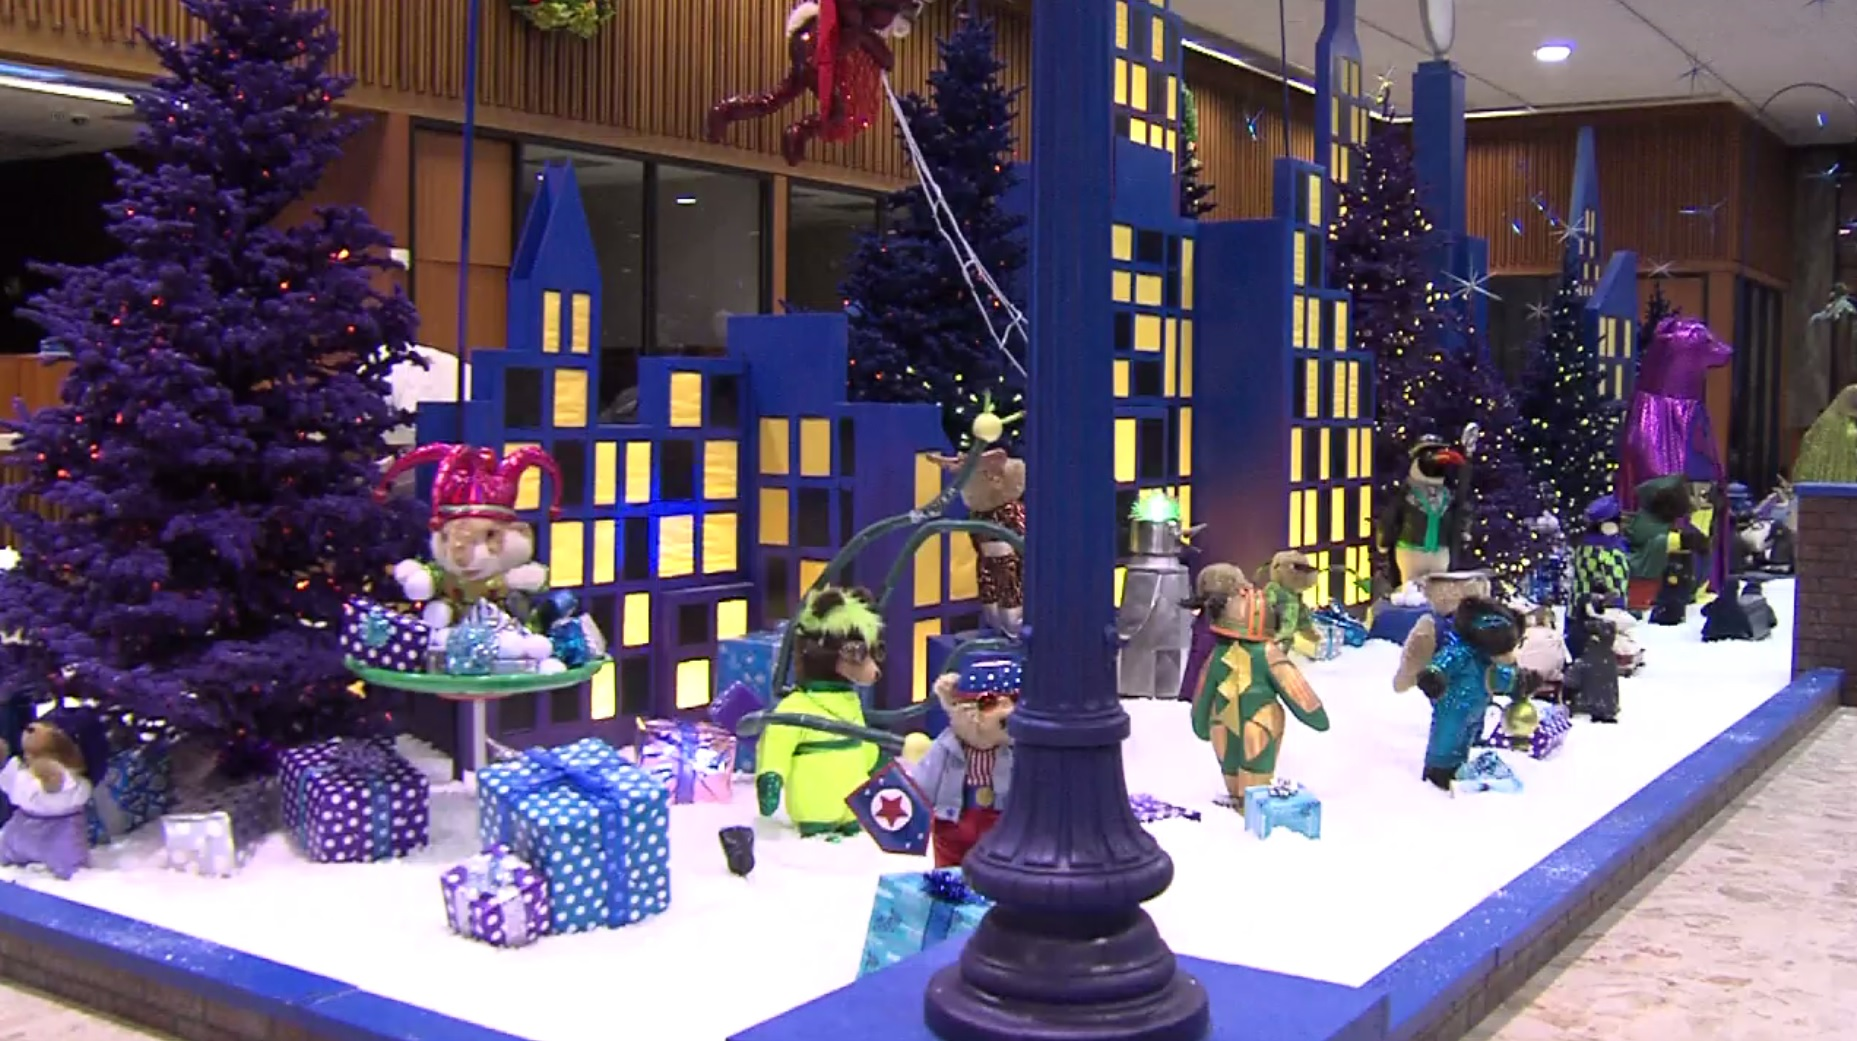 Bmo Harris Christmas Display 2020 BMO Harris Bank's superhero themed holiday display opens in